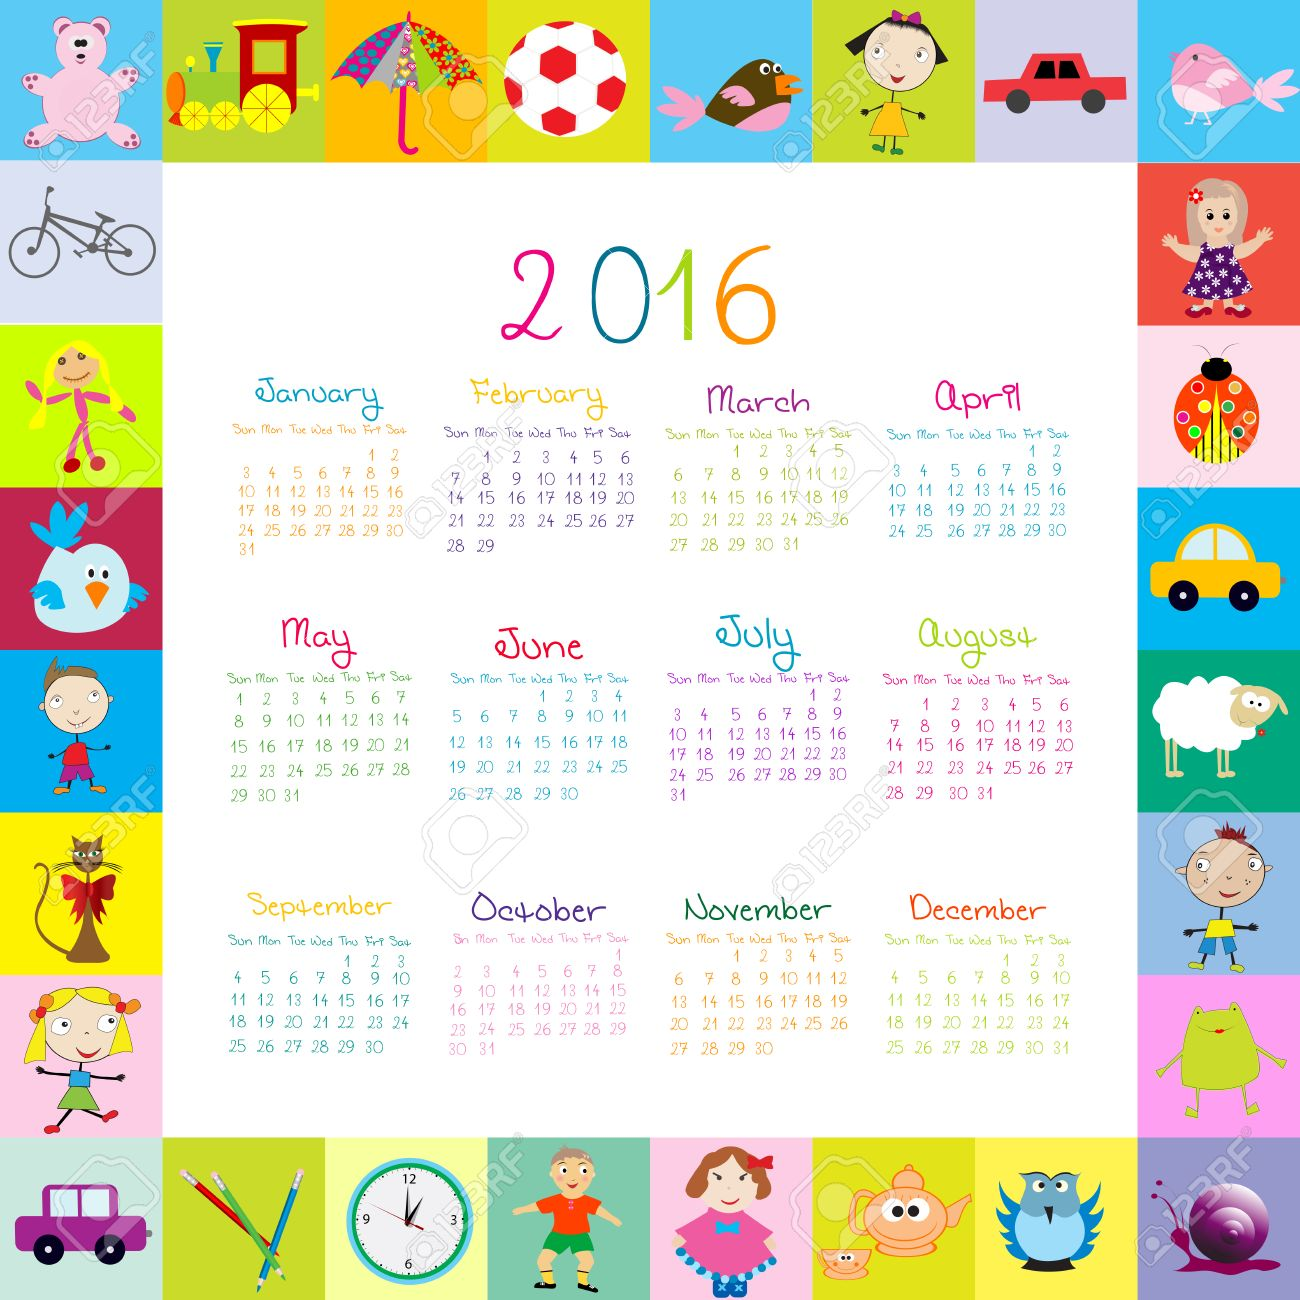 frame with cartoon toys 2016 calendar royalty free cliparts vectors